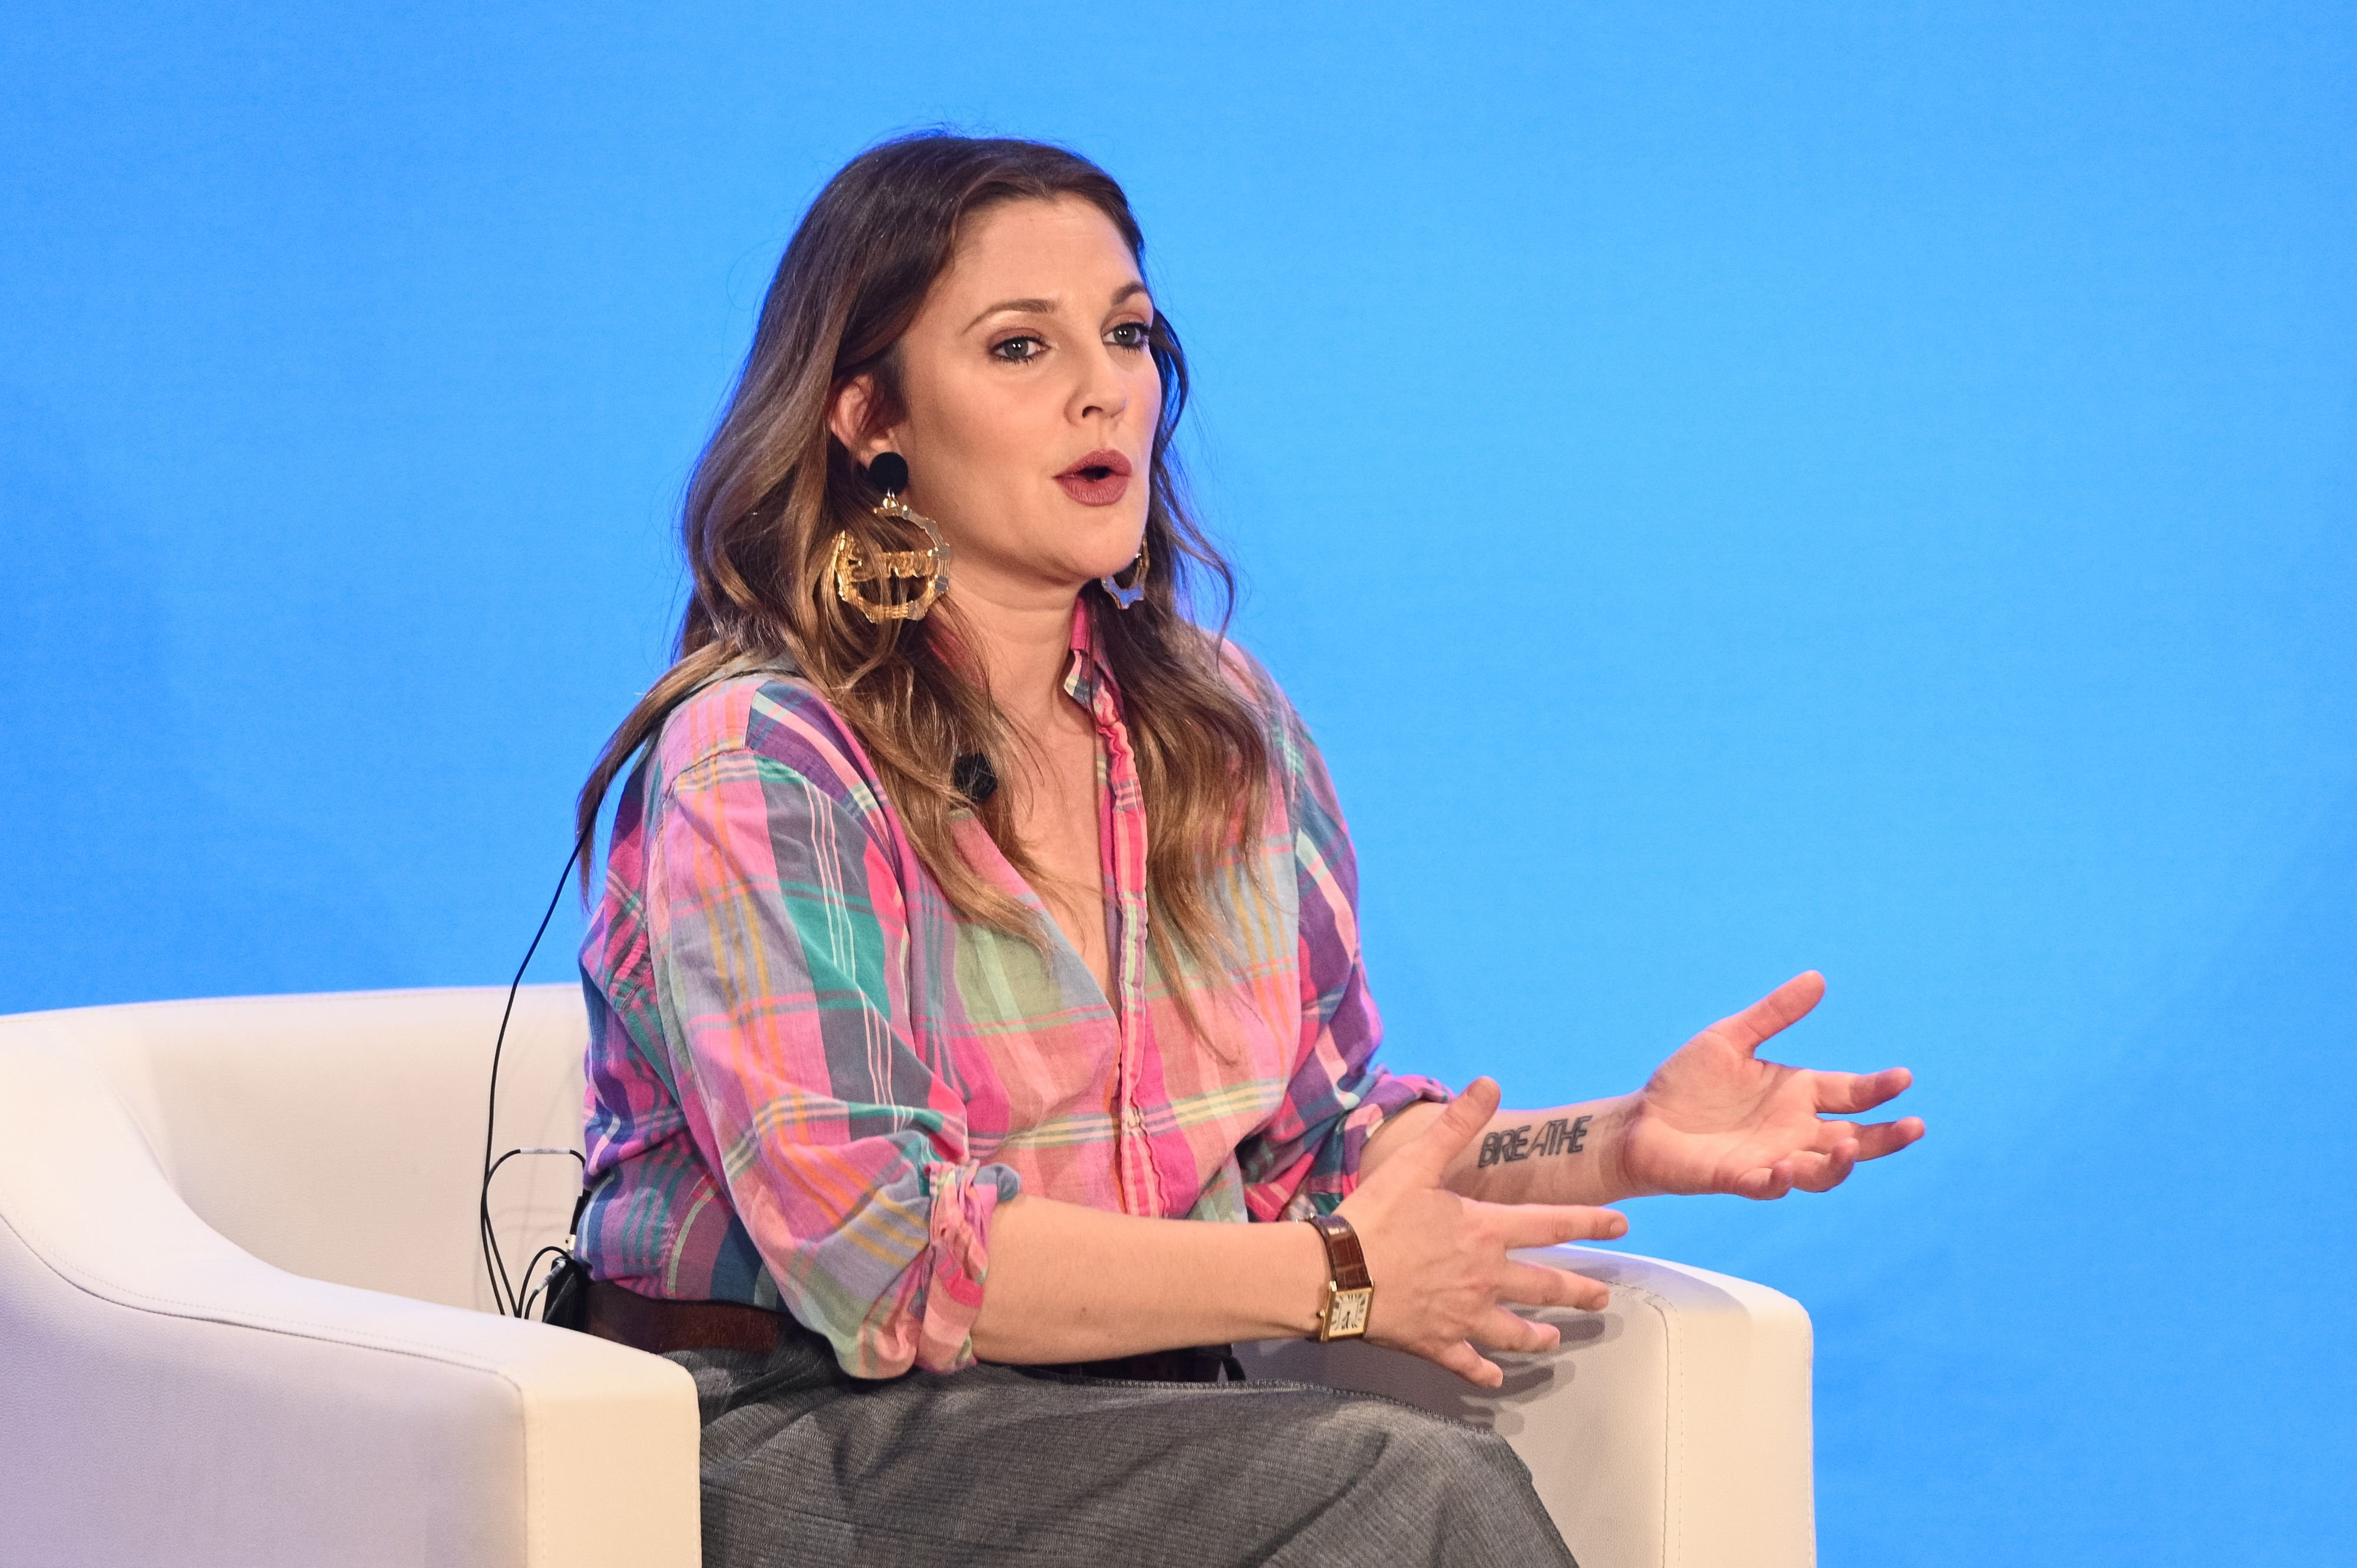 Drew Barrymore speaks onstage at WeWork New York City on May 15, 2019 | Photo: Getty Images